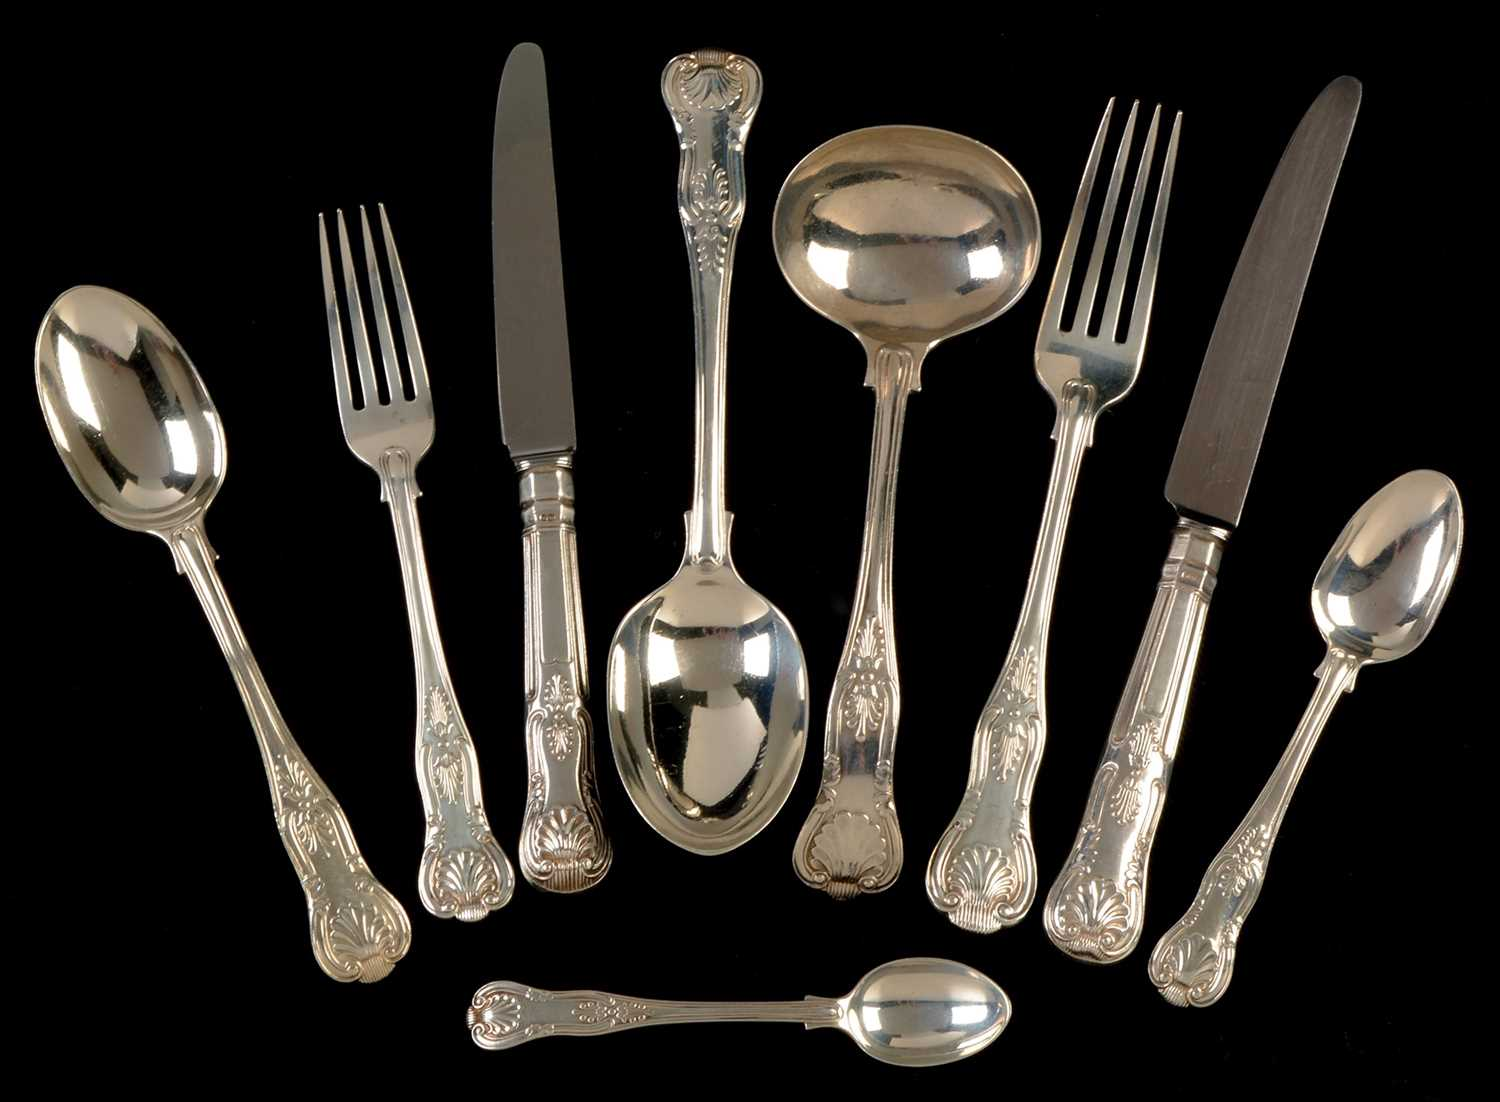 253 - Kings pattern silver cutlery service